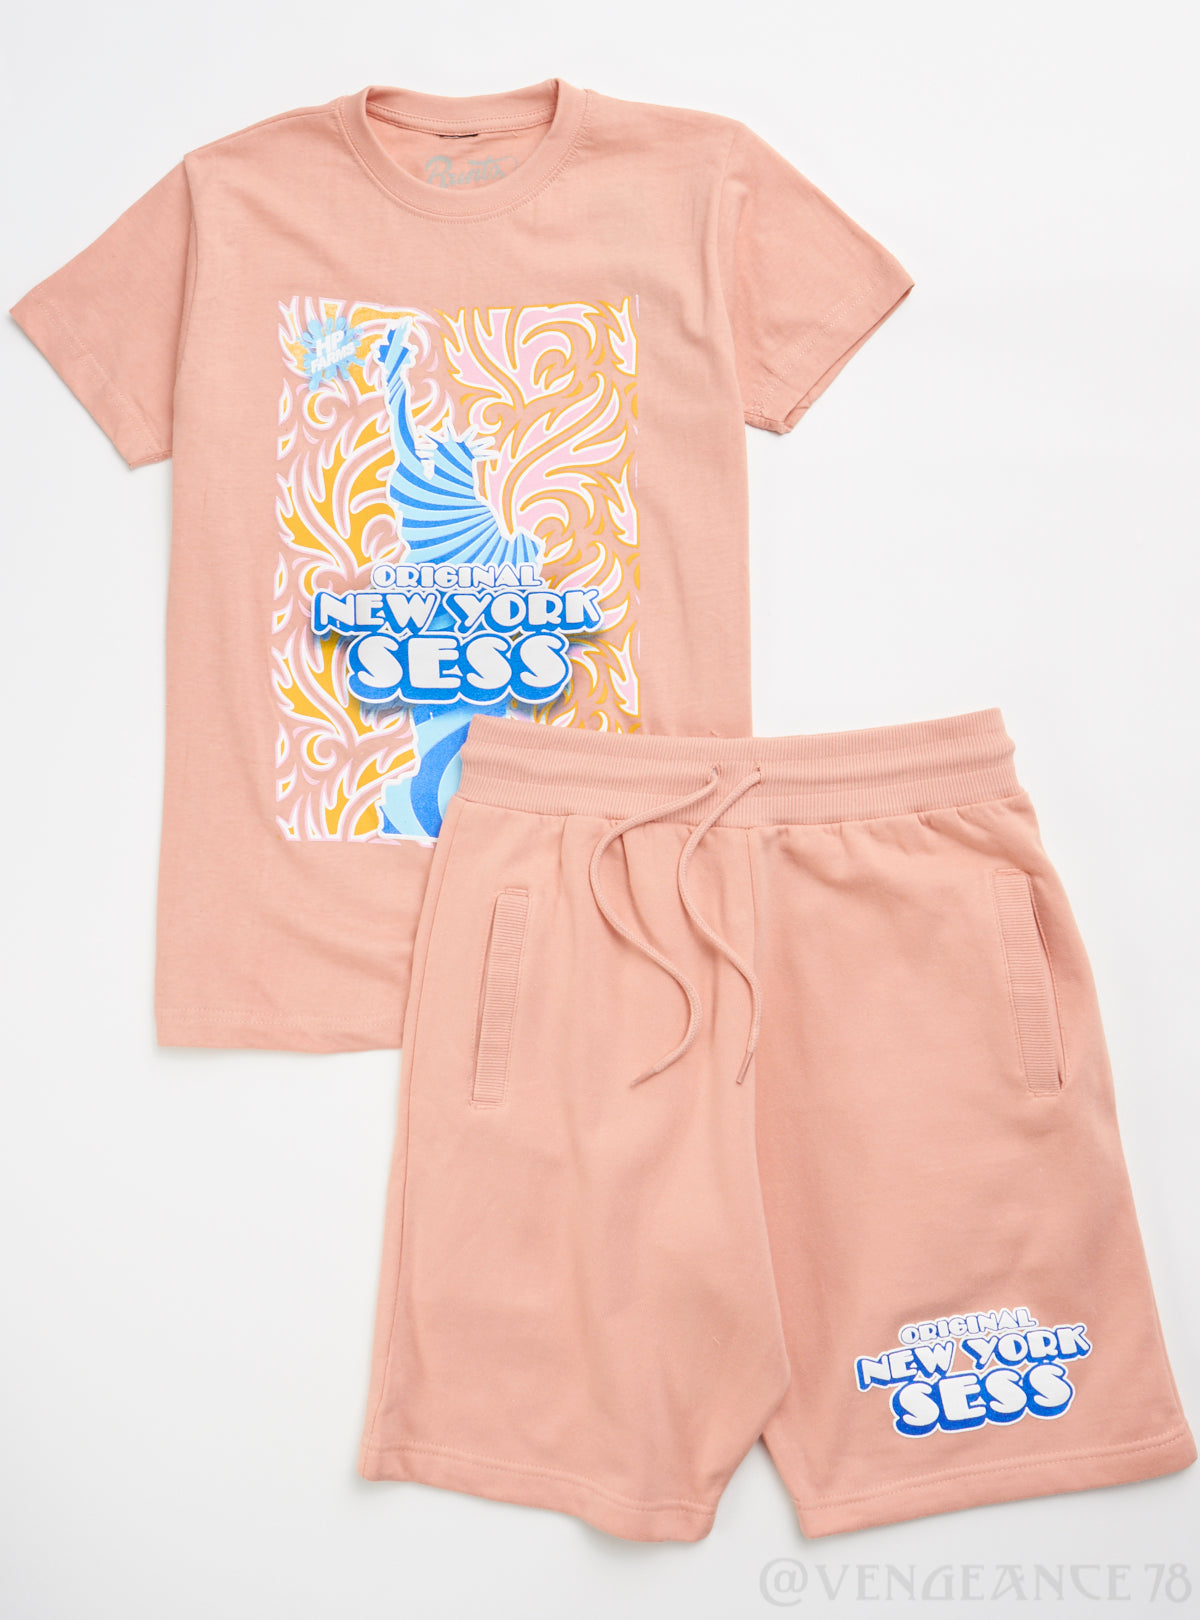 Runtz Short Set - New York Sess - Blush - 40138